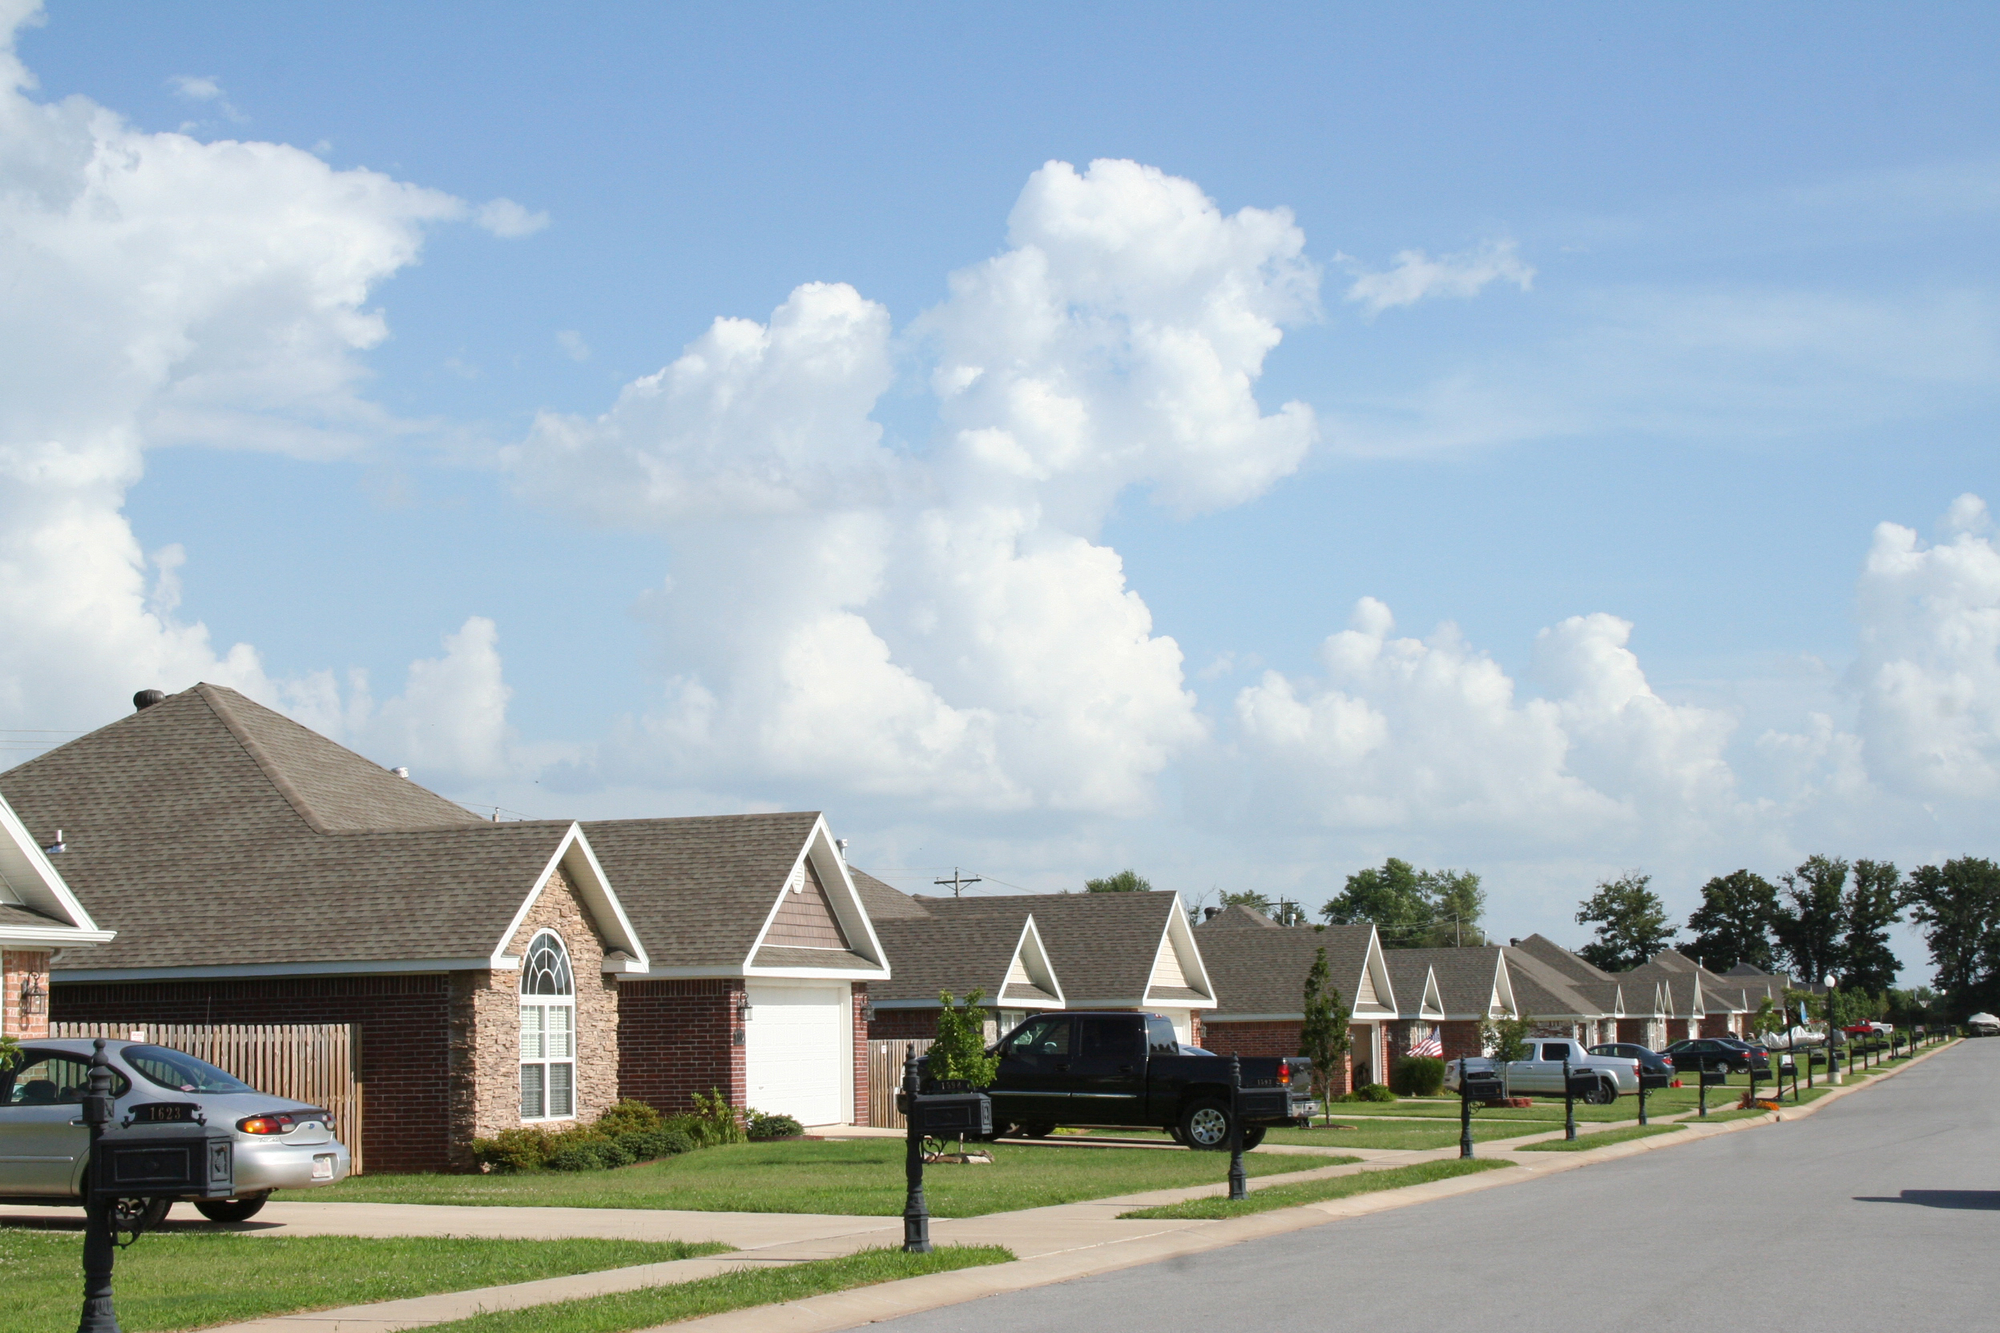 The Neighborhood - Subdivision of fairly new homes